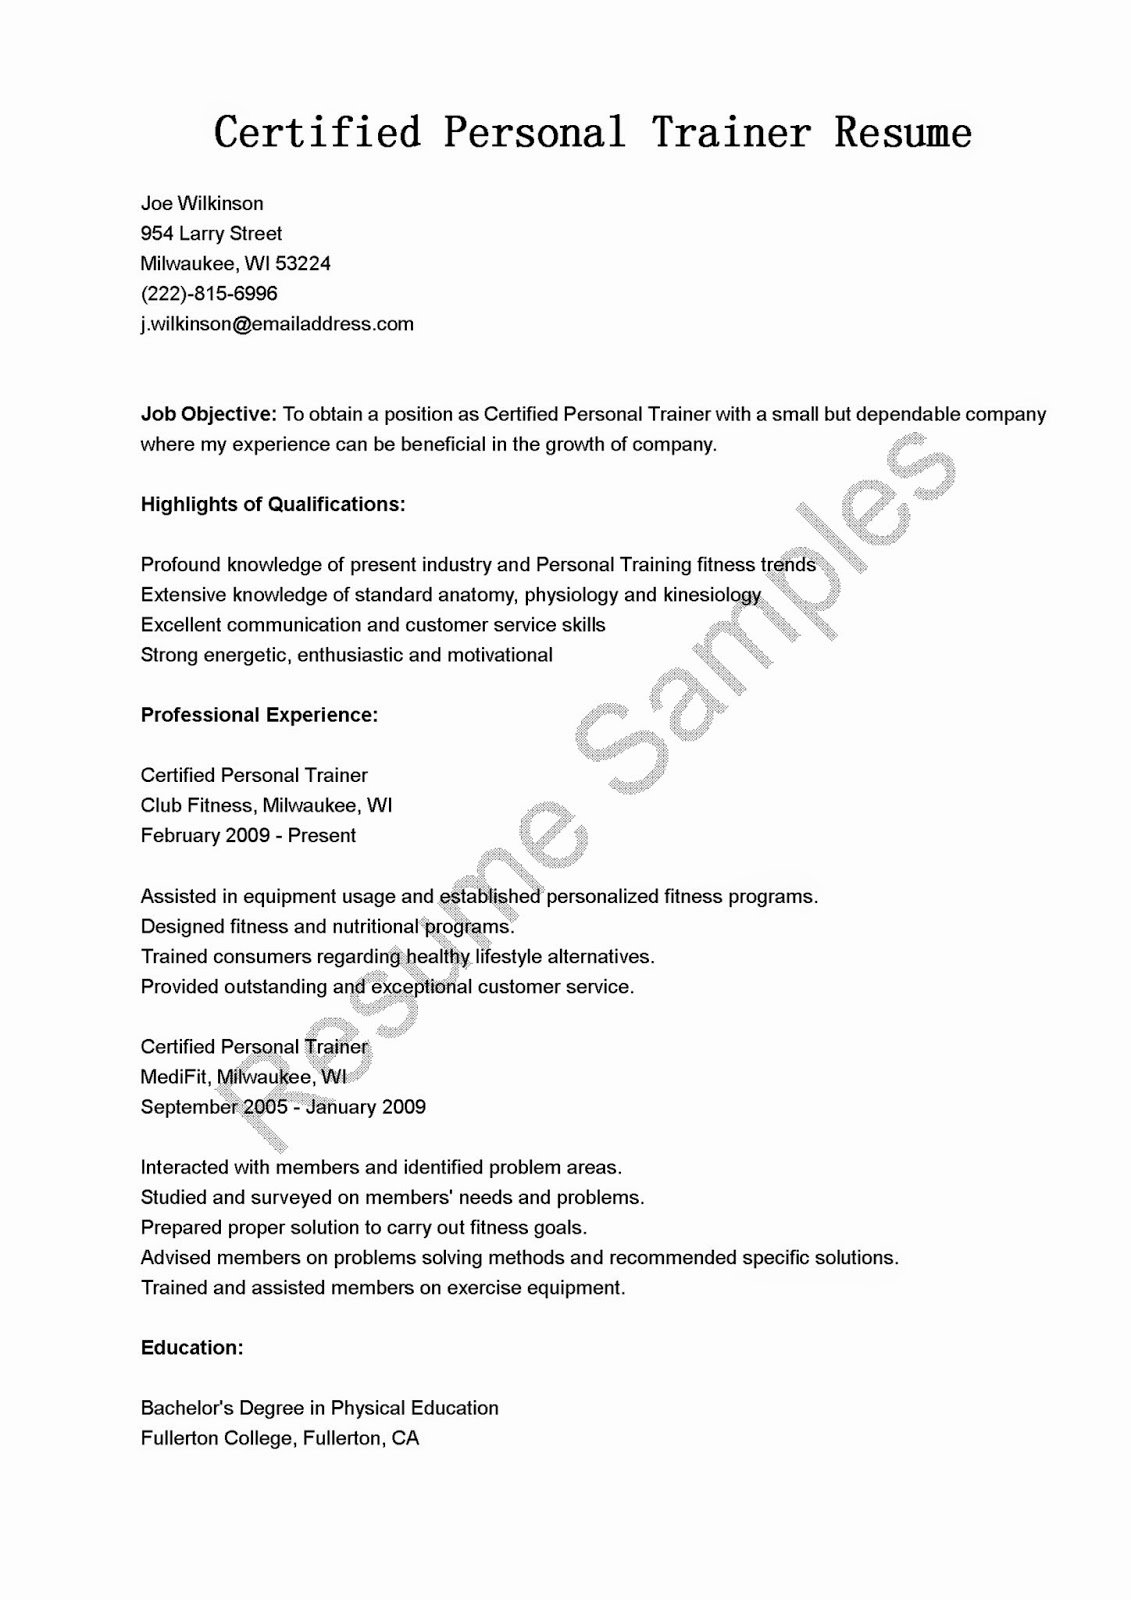 Personal Trainer Resume Template Elegant Resume Samples Certified Personal Trainer Resume Sample